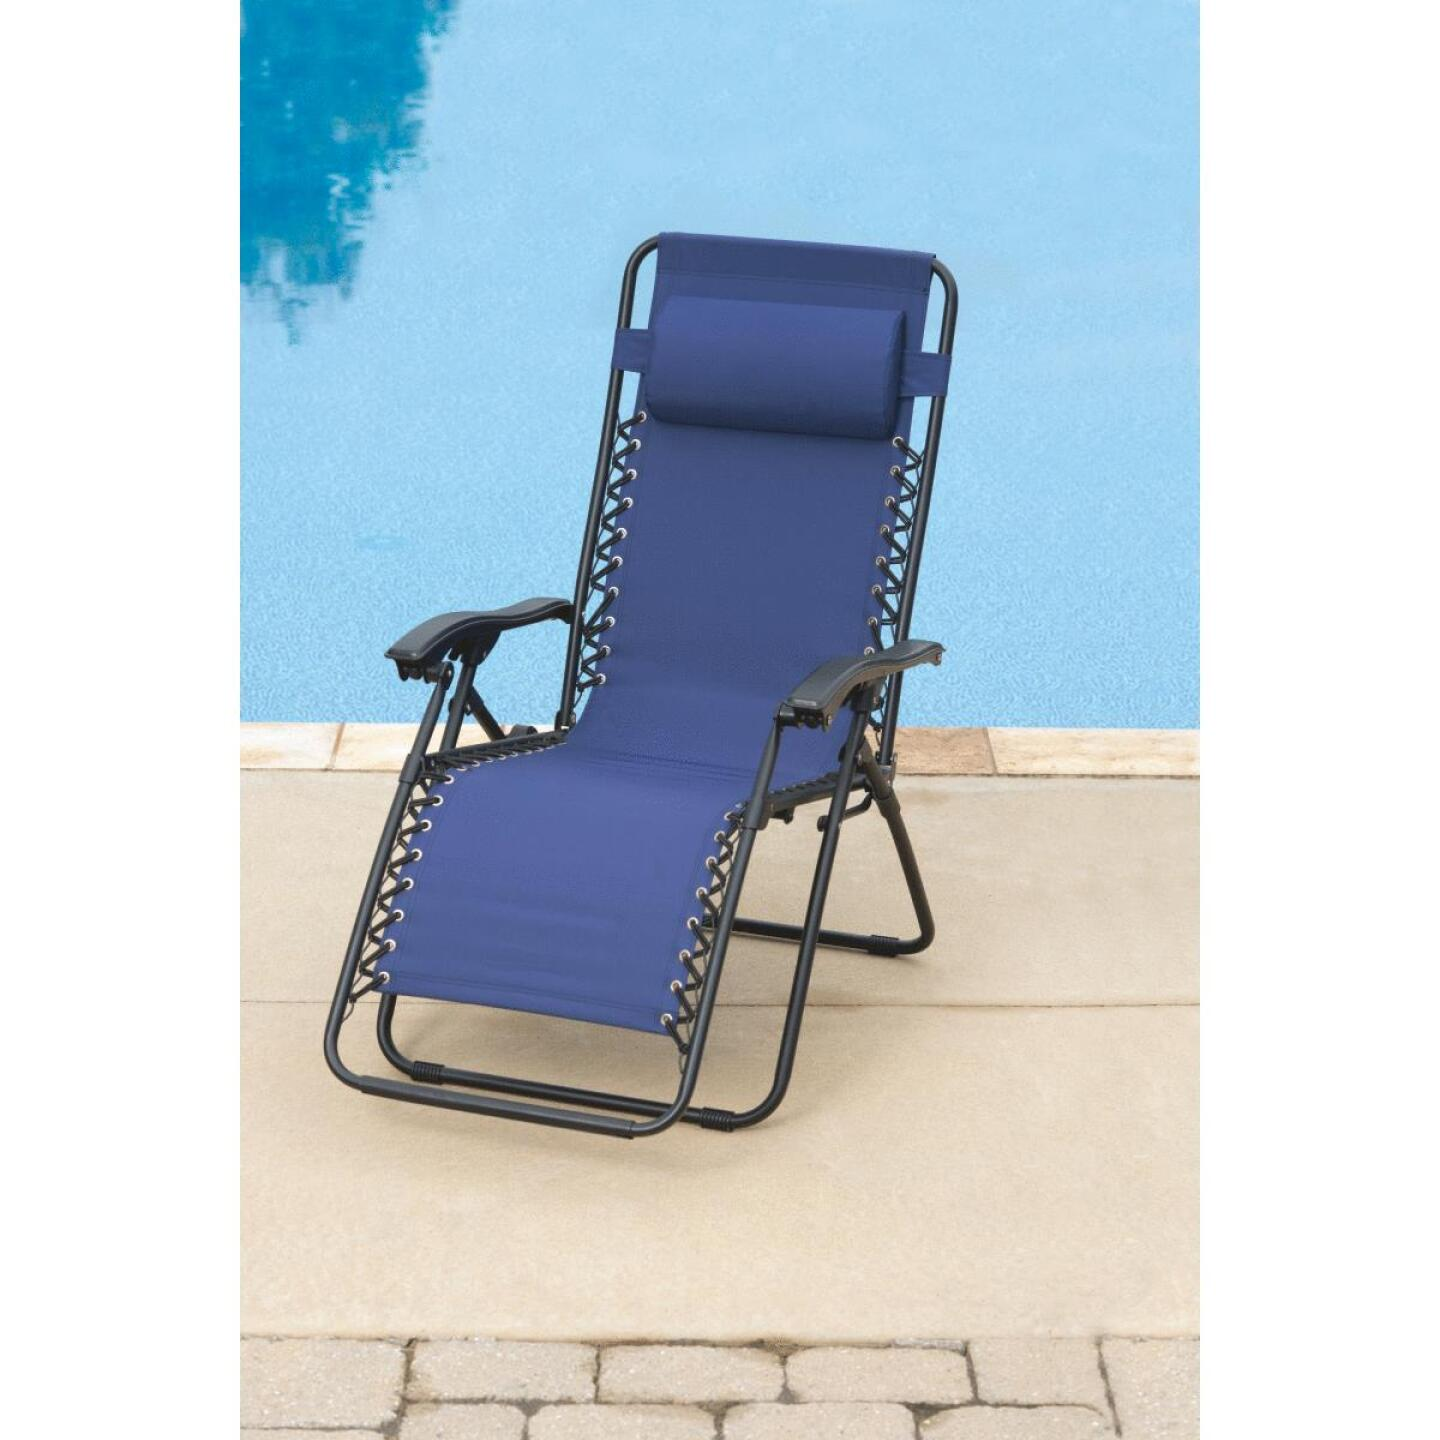 Outdoor Expressions Zero Gravity Relaxer Blue Convertible Lounge Chair Image 7